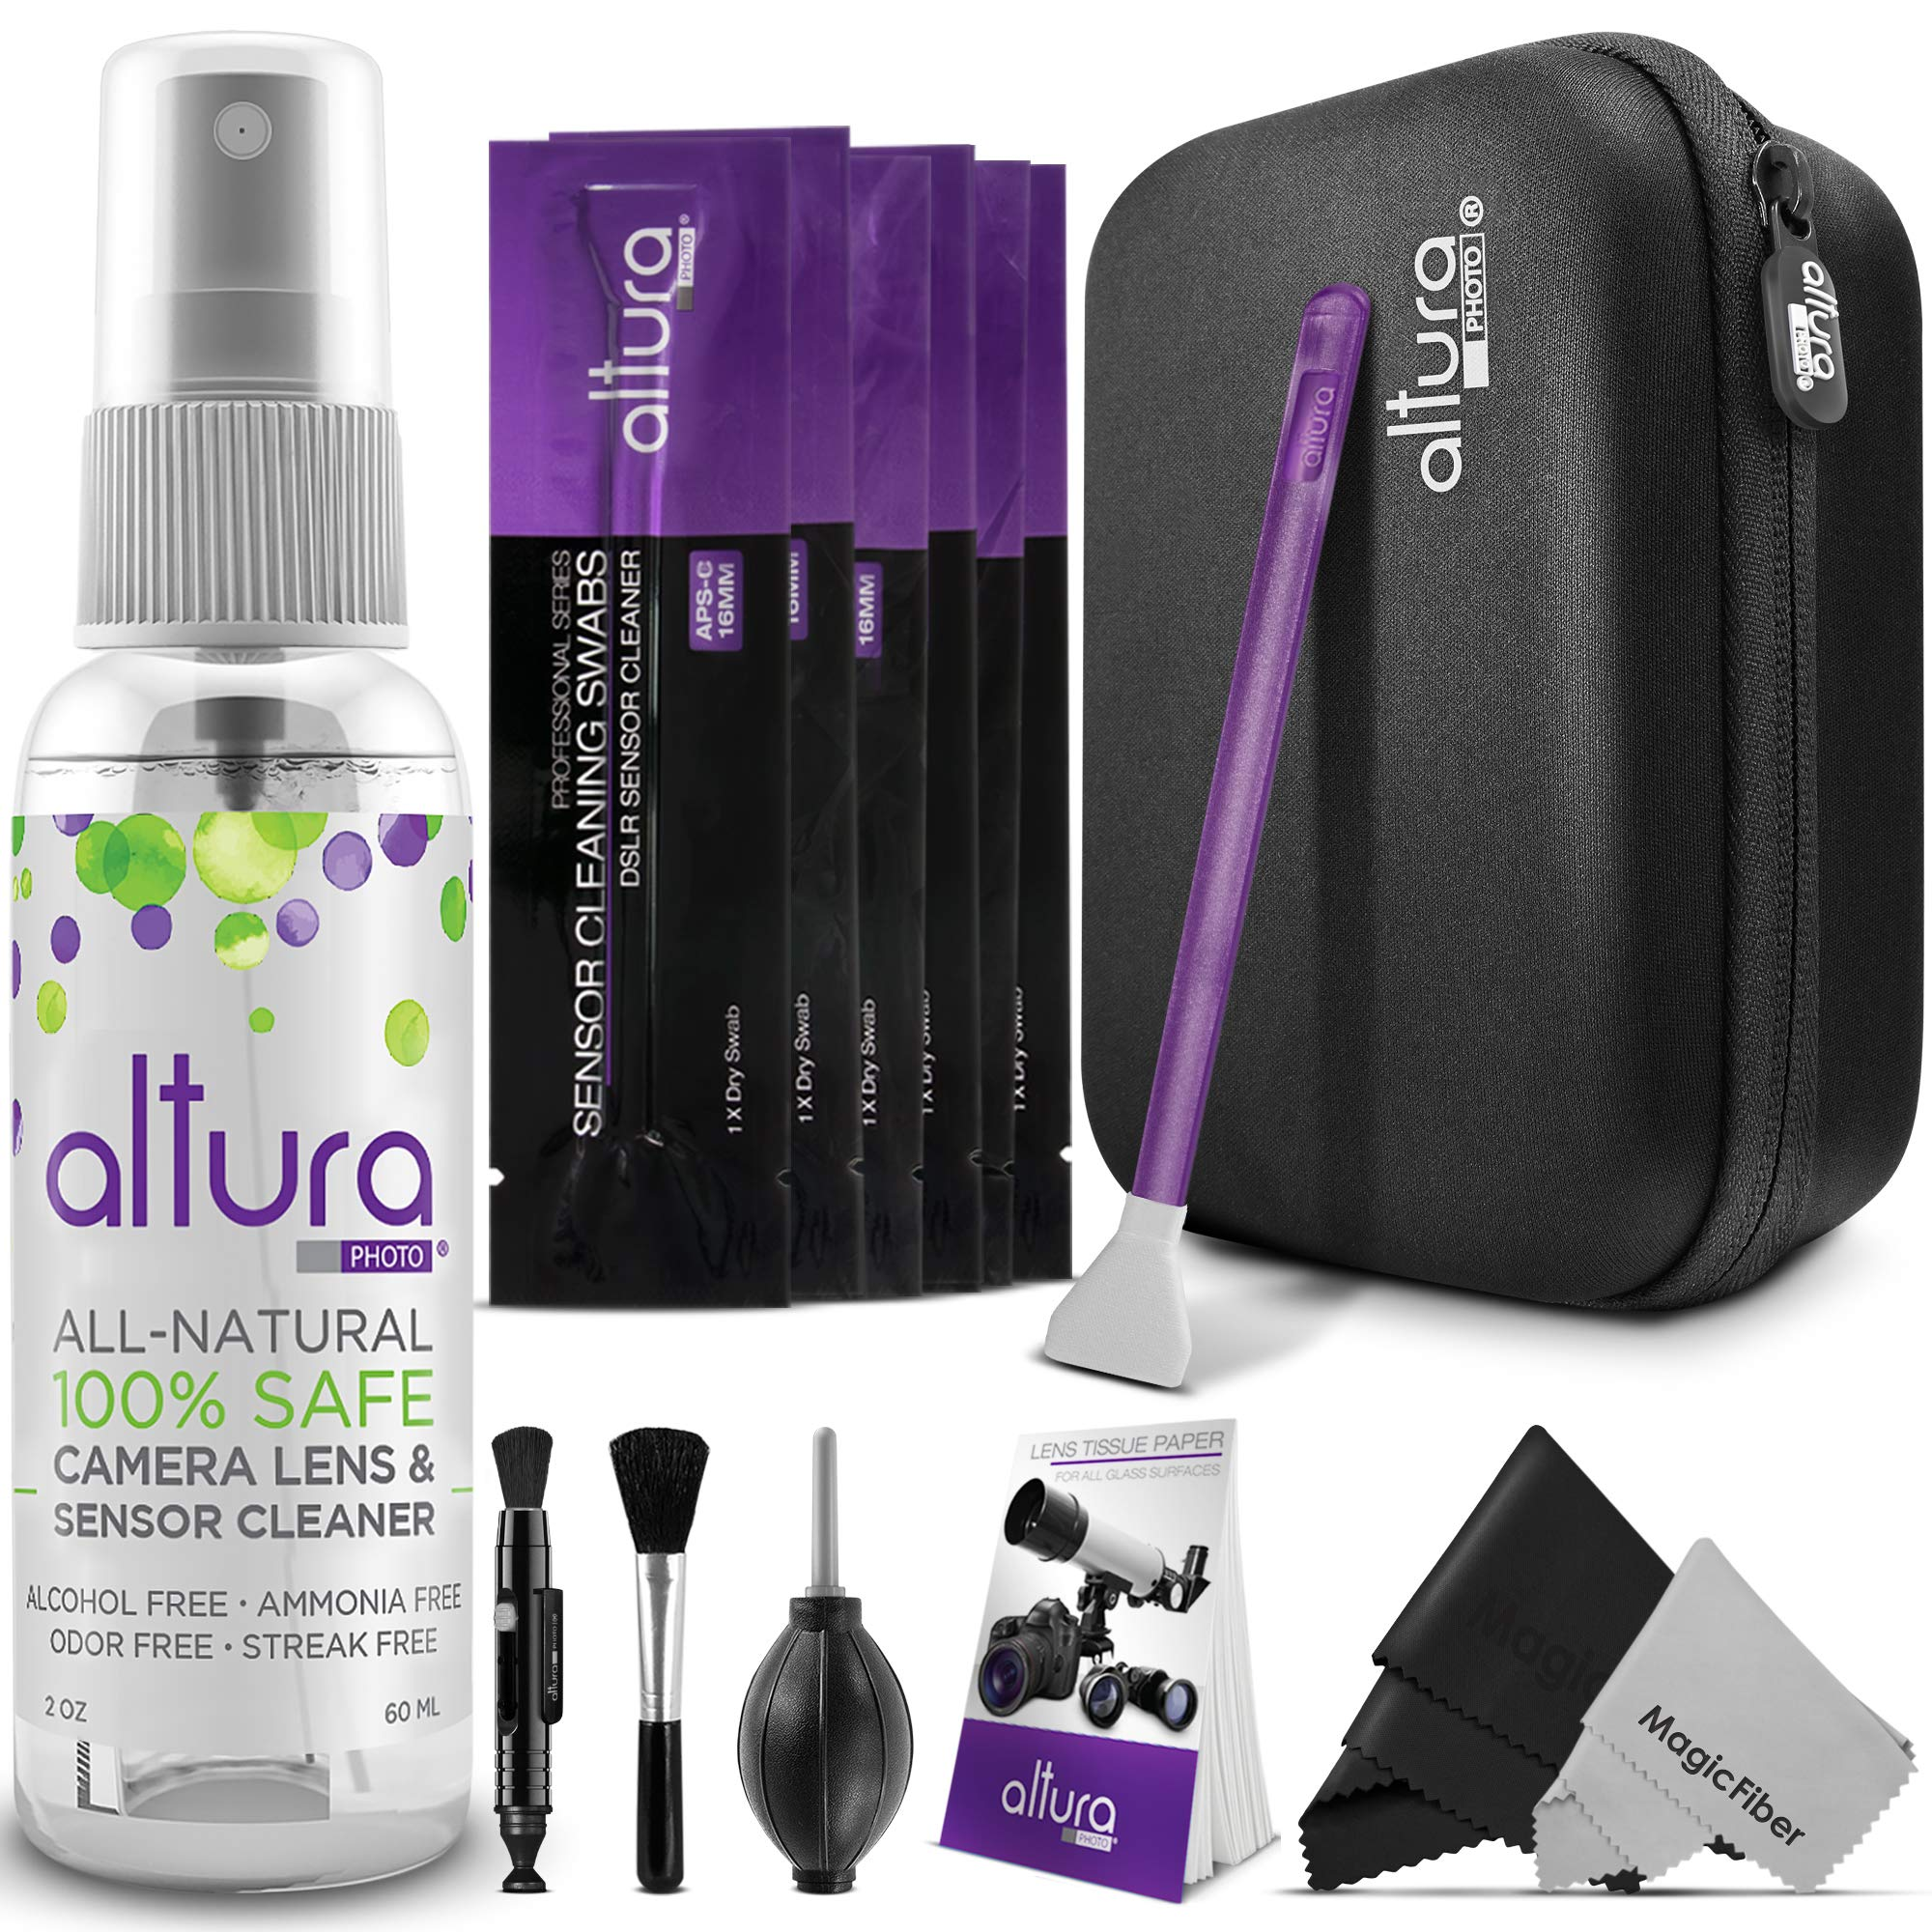 Altura Photo Professional Cleaning Kit APS-C DSLR Cameras Sensor Cleaning Swabs with Carry Case